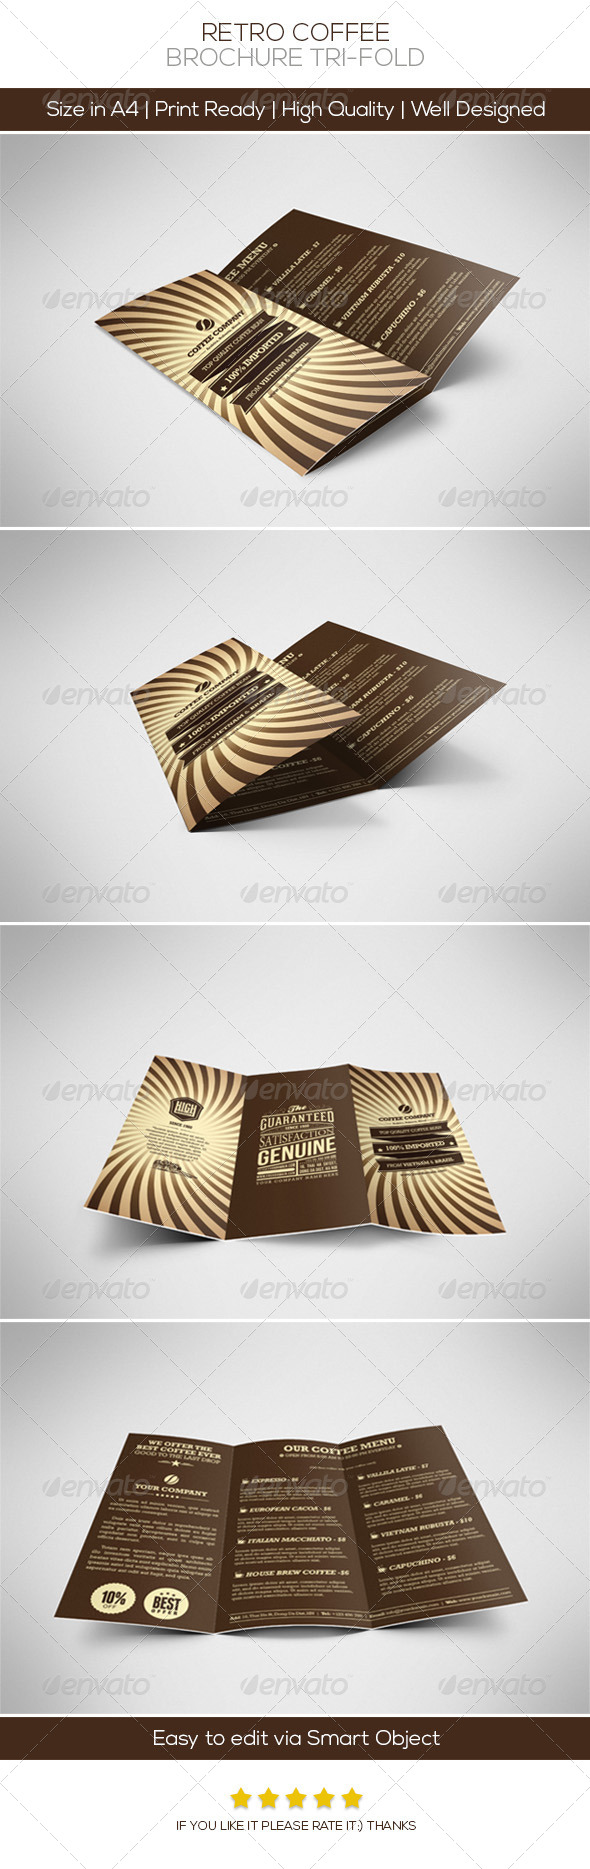 Retro Coffee Brochure Tri-fold - Brochures Print Templates